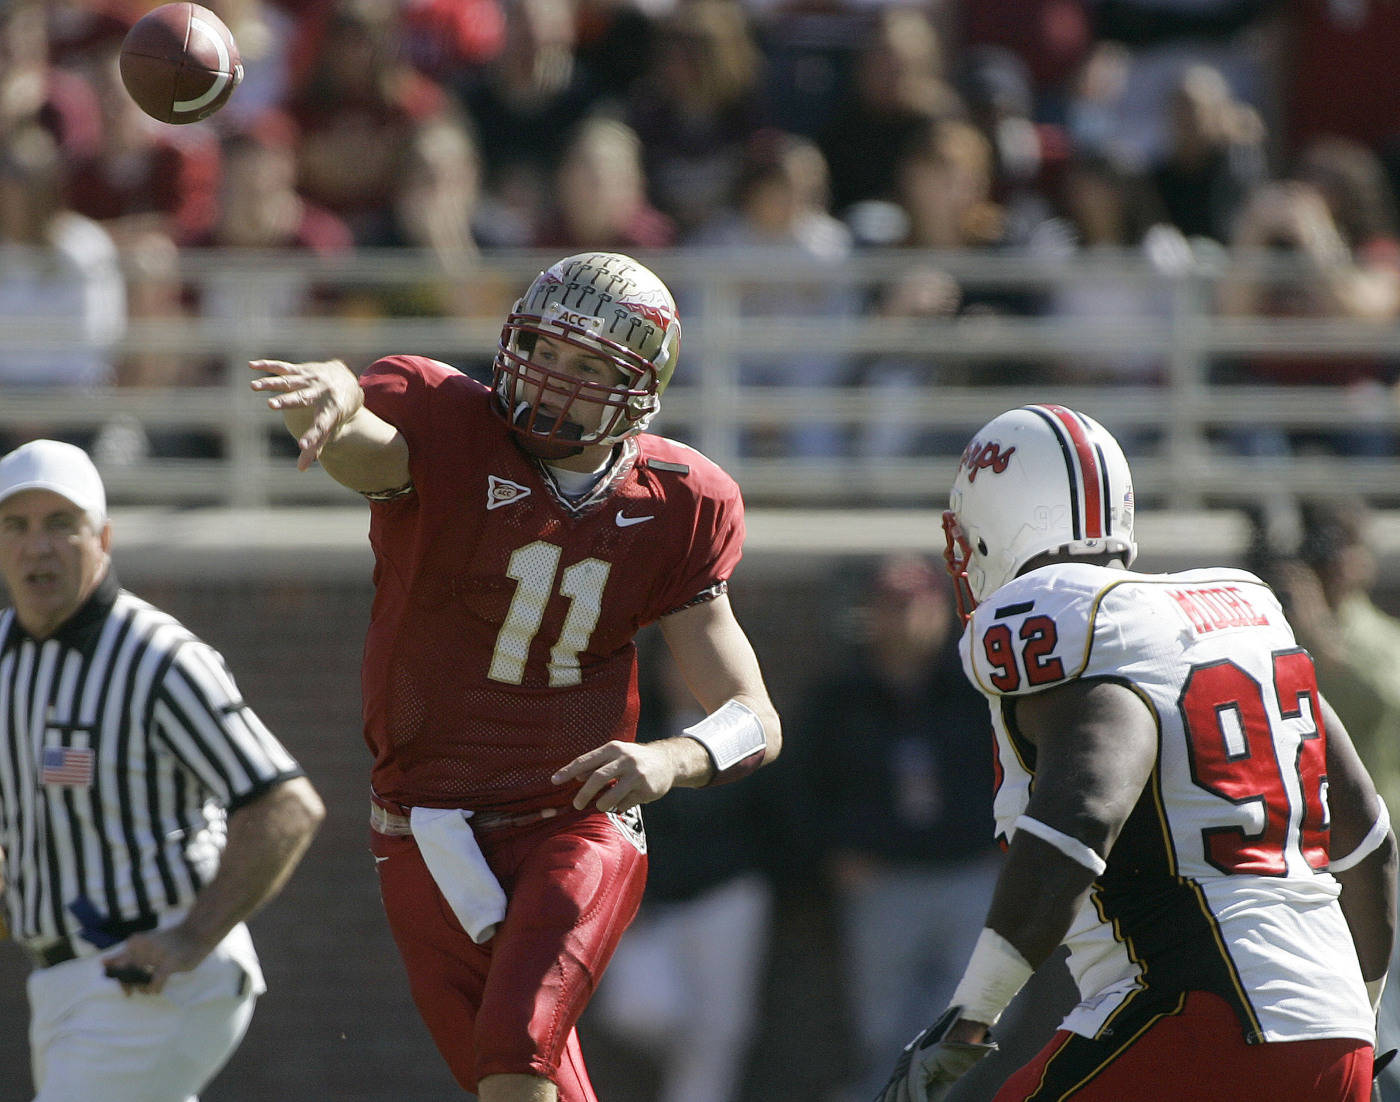 Florida State quarterback Drew Weatherford, left, throws a first quarter pass as Maryland's Dre Moore, right, gives chase.